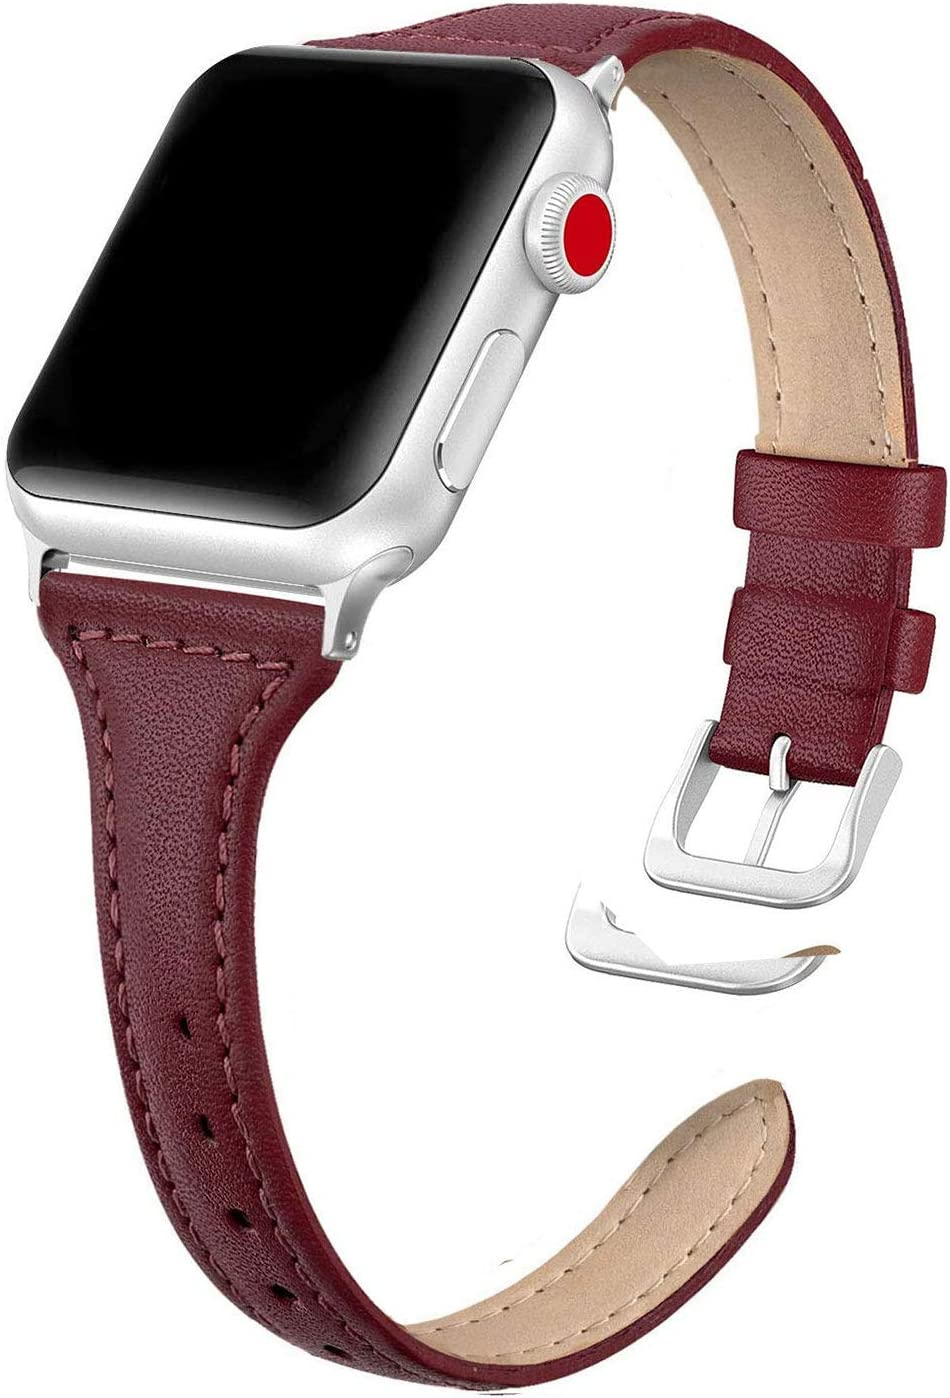 SWEES Leather Band Compatible for iWatch 38mm 40mm, Slim Thin Elegant Genuine Leather Strap Compatible for iWatch Series 6, 5, 4, 3, 2, 1, SE, Sport & Edition Women, Wine Red